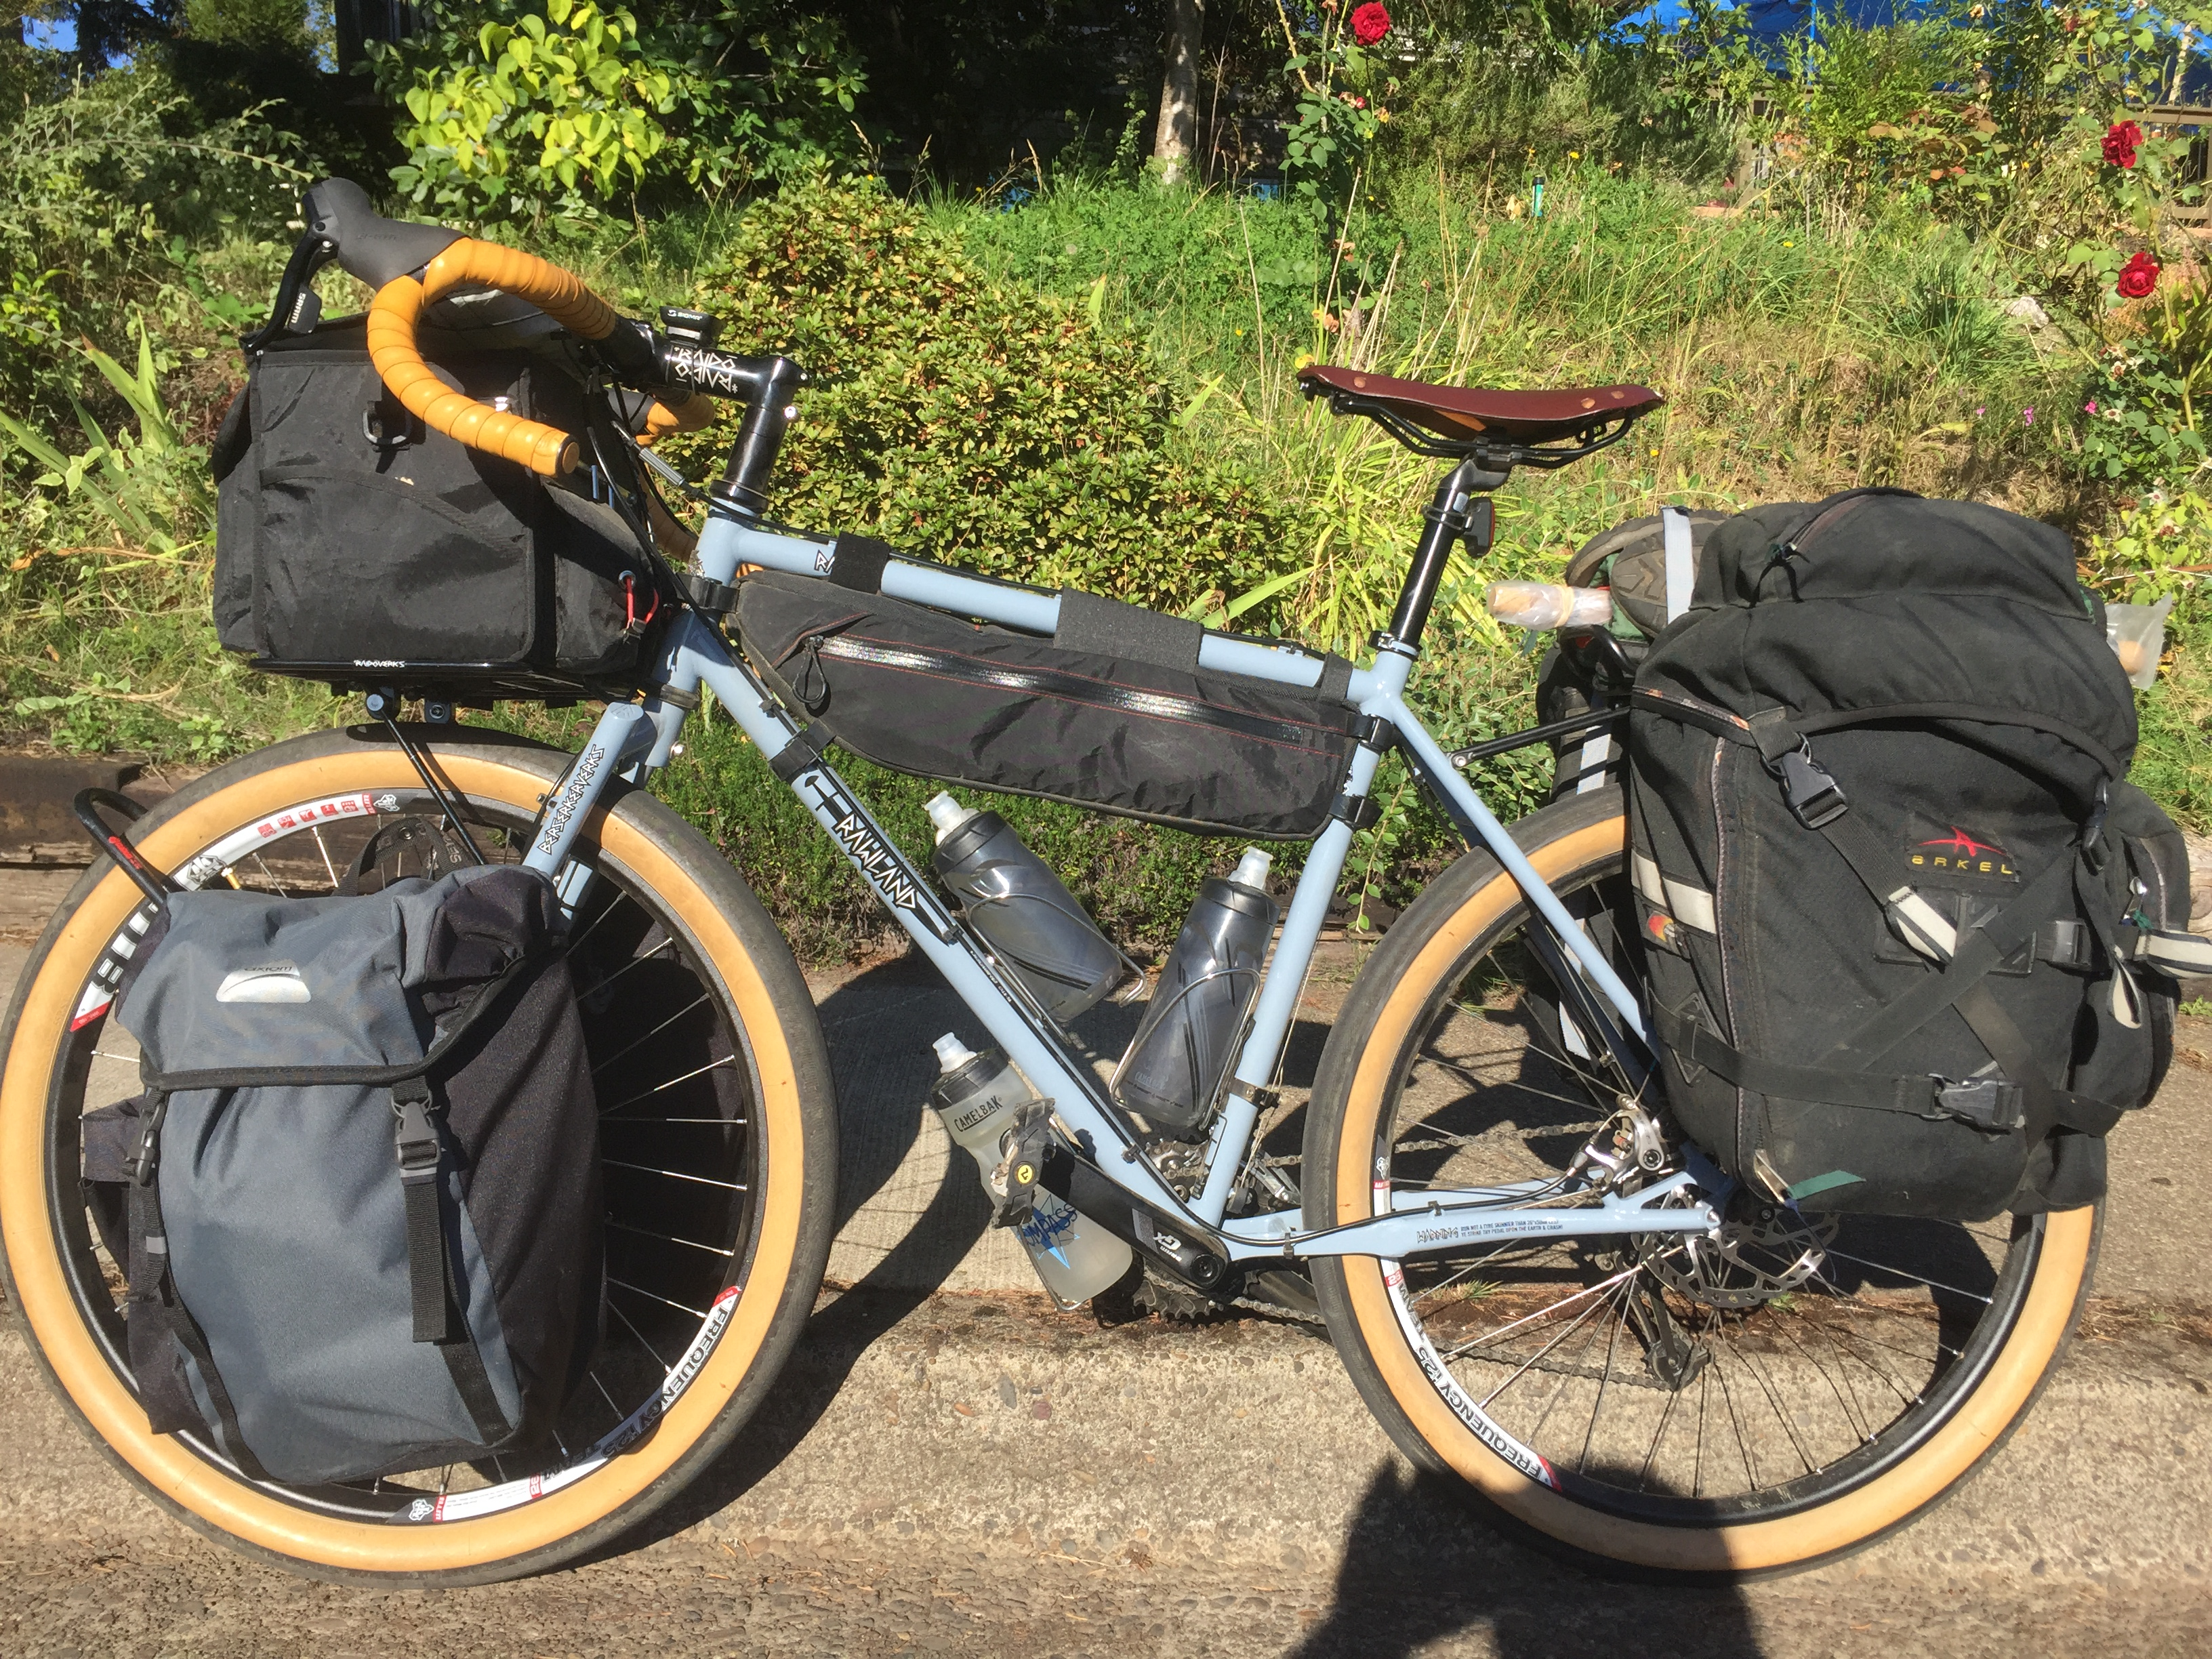 Loaded touring bike